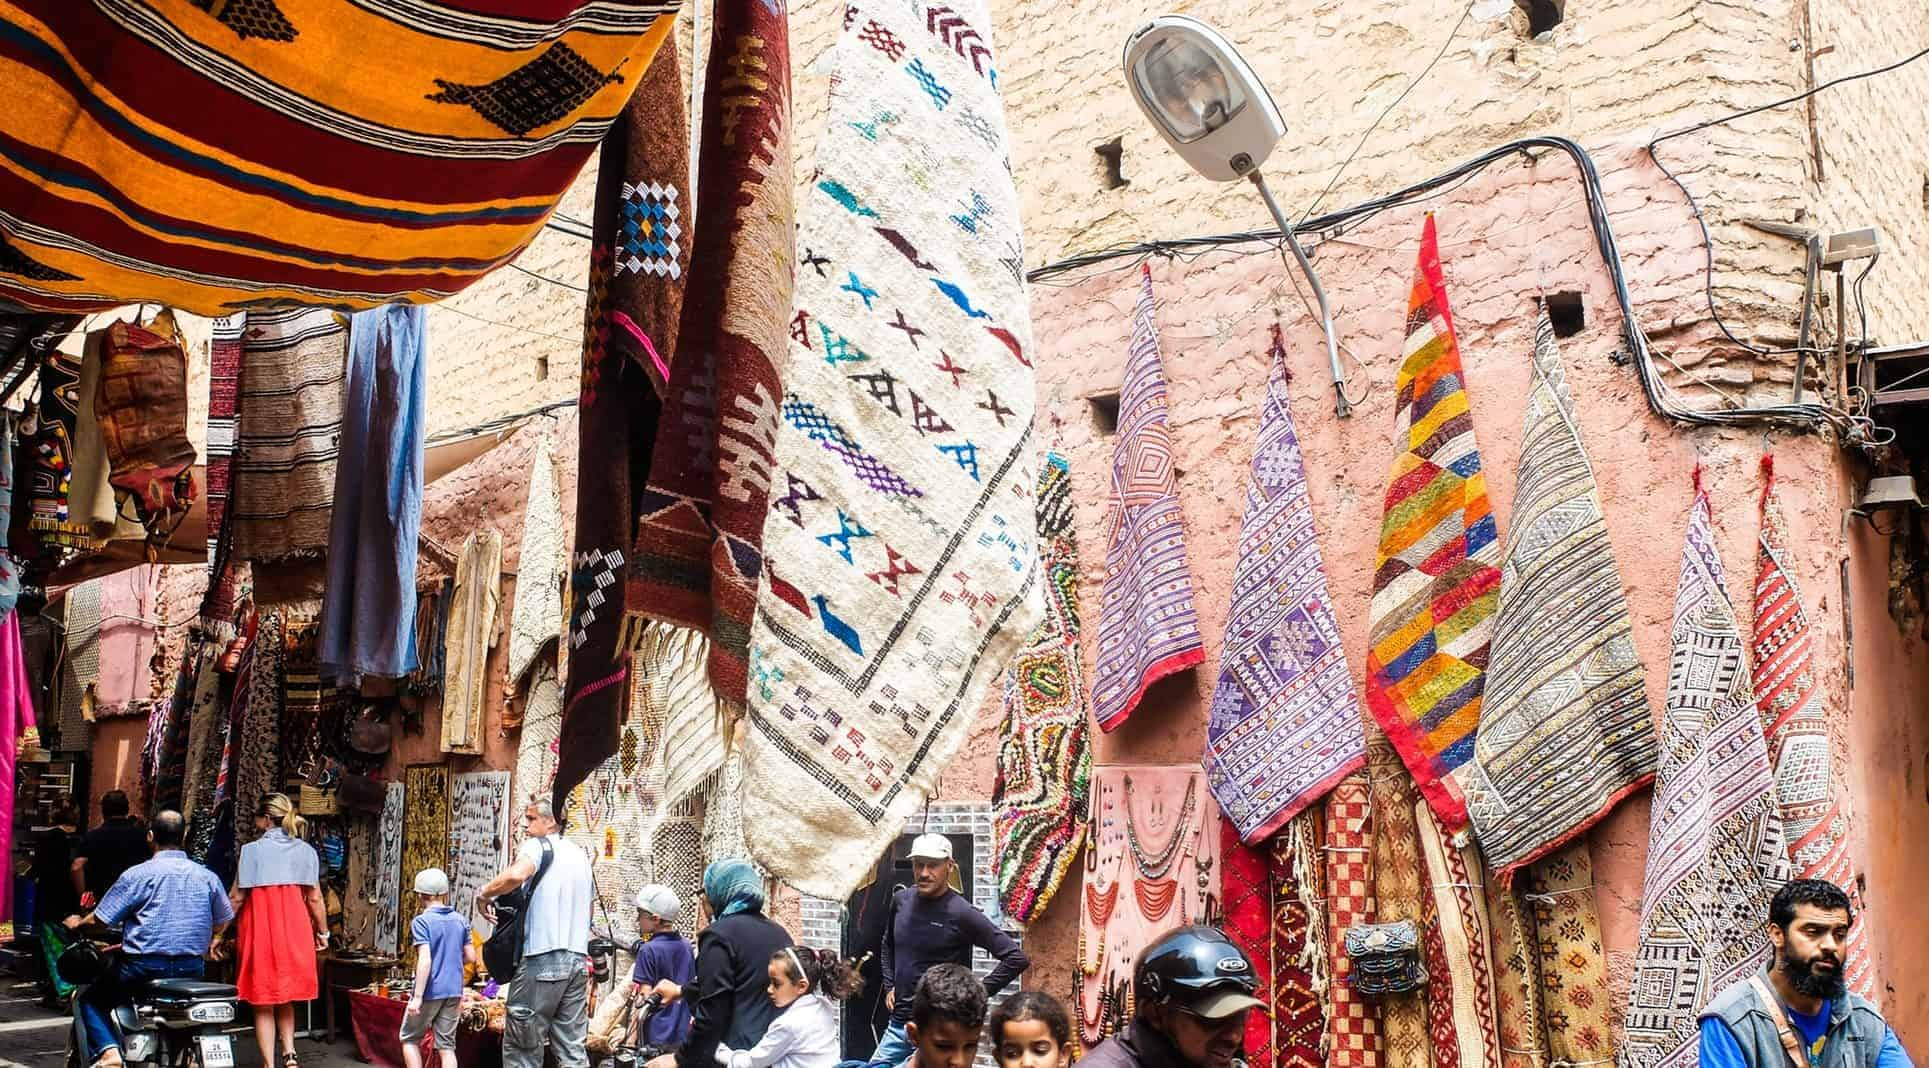 Morocco souk with a high concentration of locals